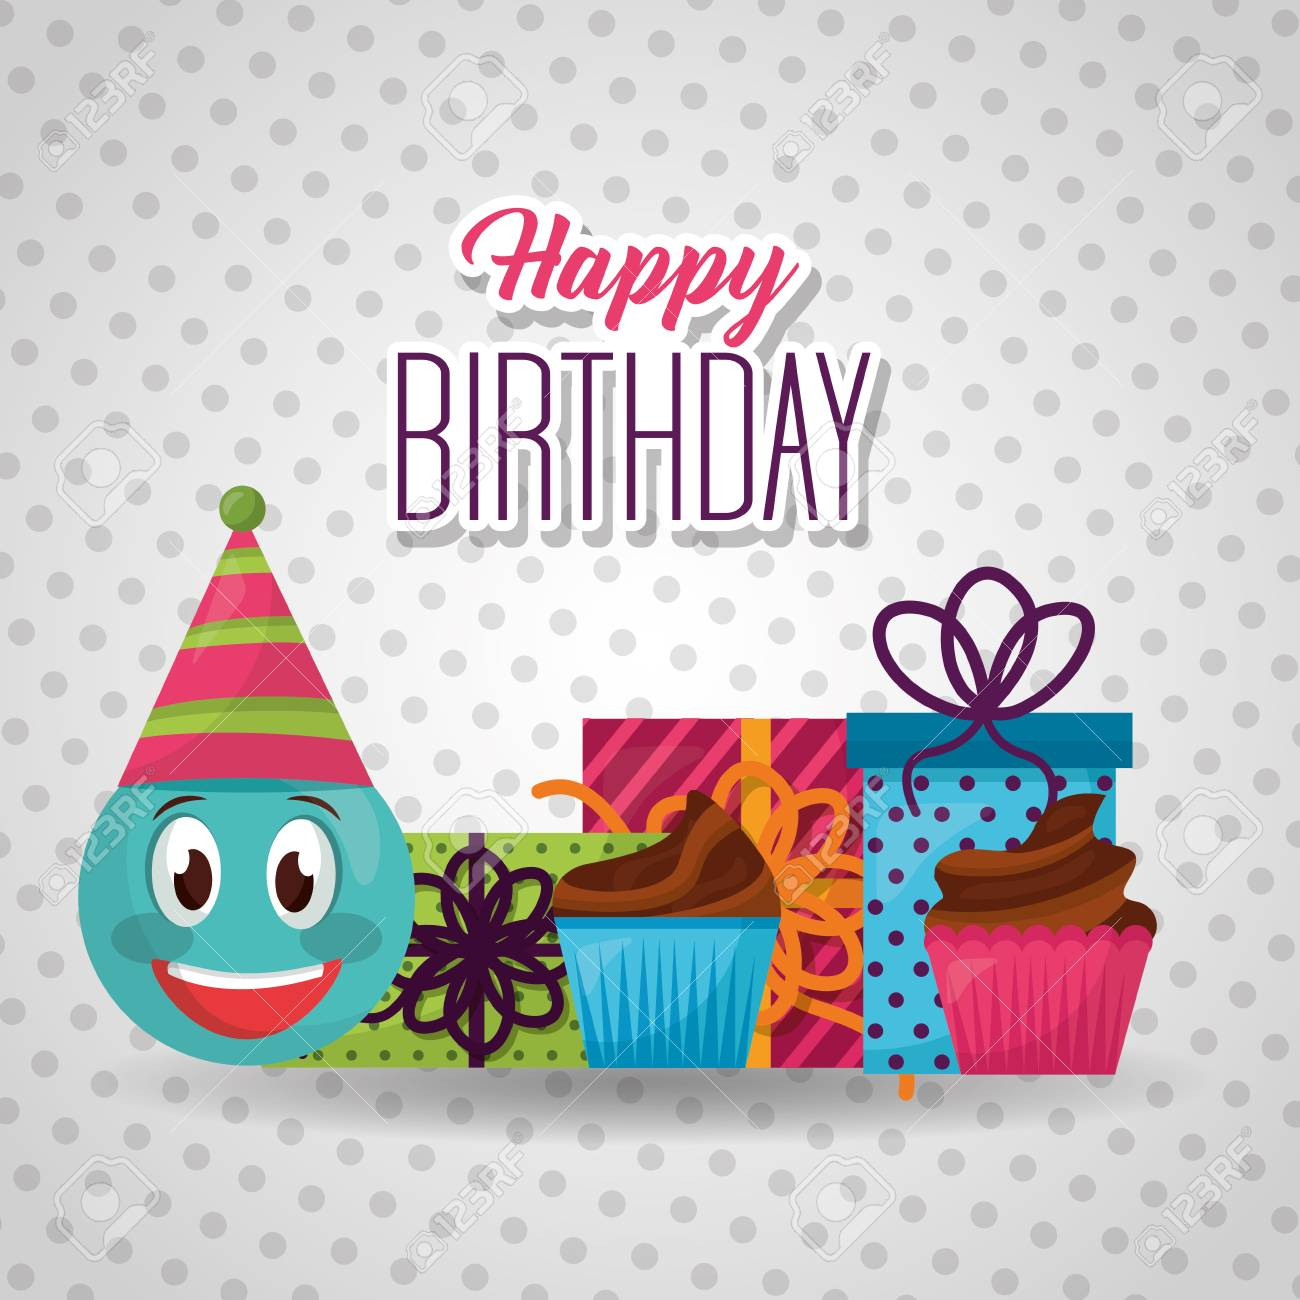 Happy Birthday Emoji Smiling Party Hat Gift Boxes Cakes Vector